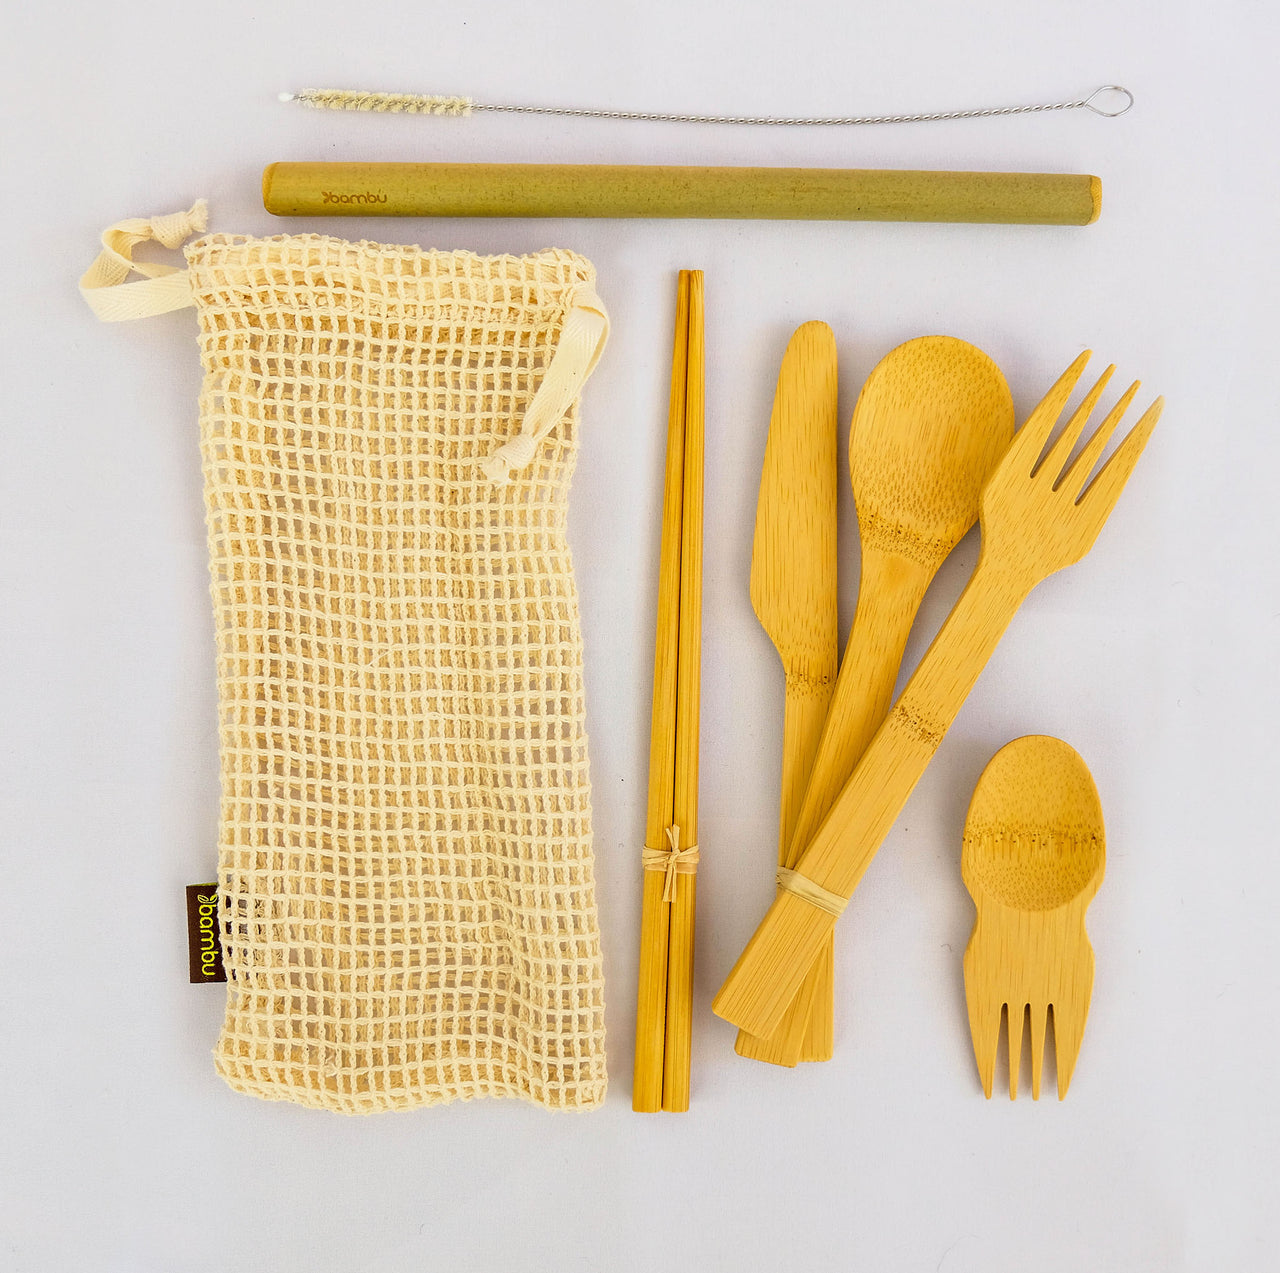 Eat/Drink Tool Kit